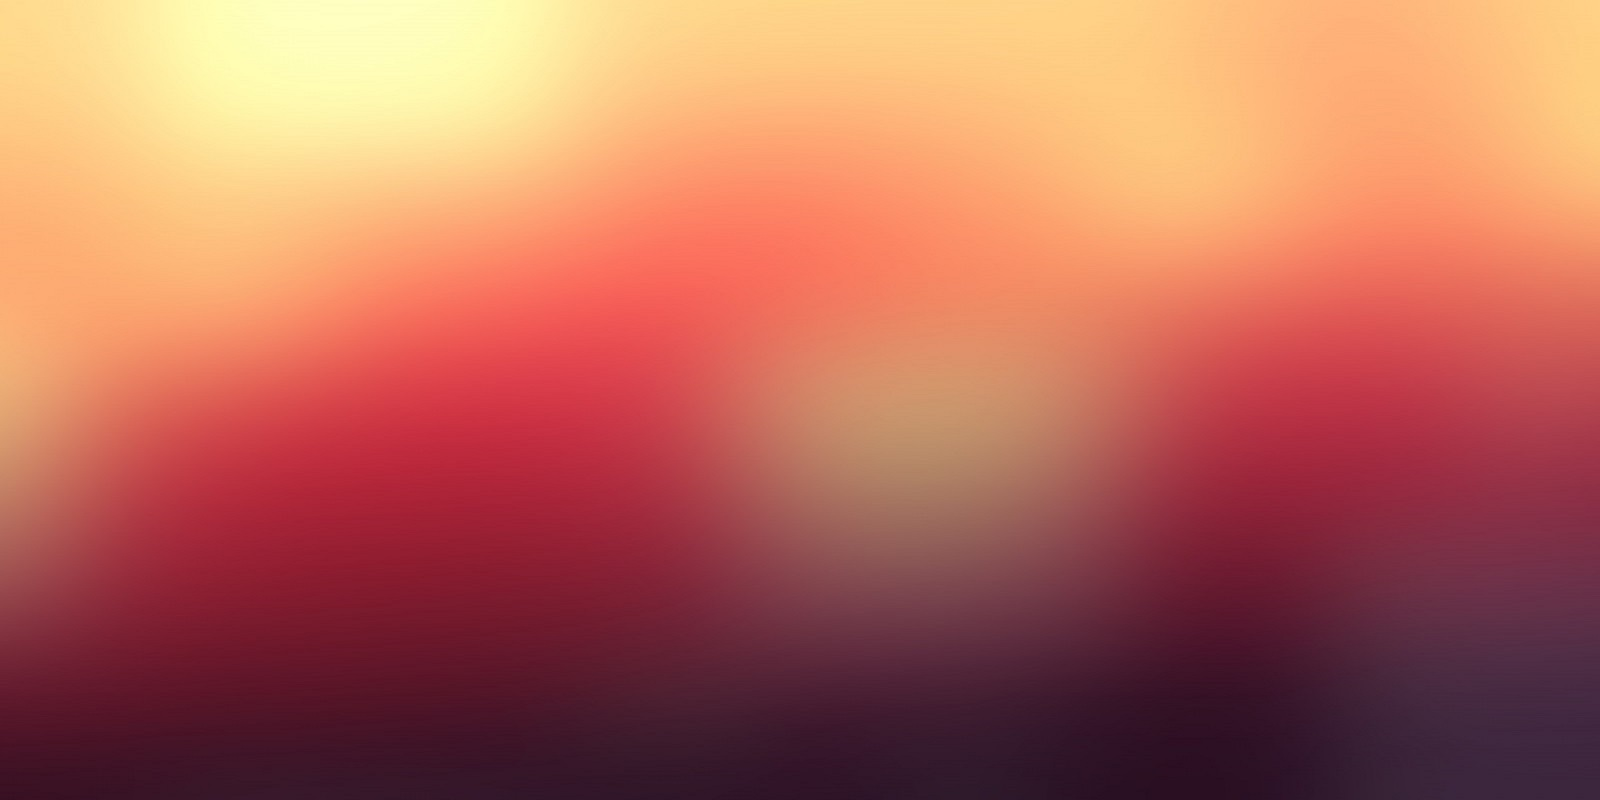 gradient_blurred_digital_art_artwork-263338